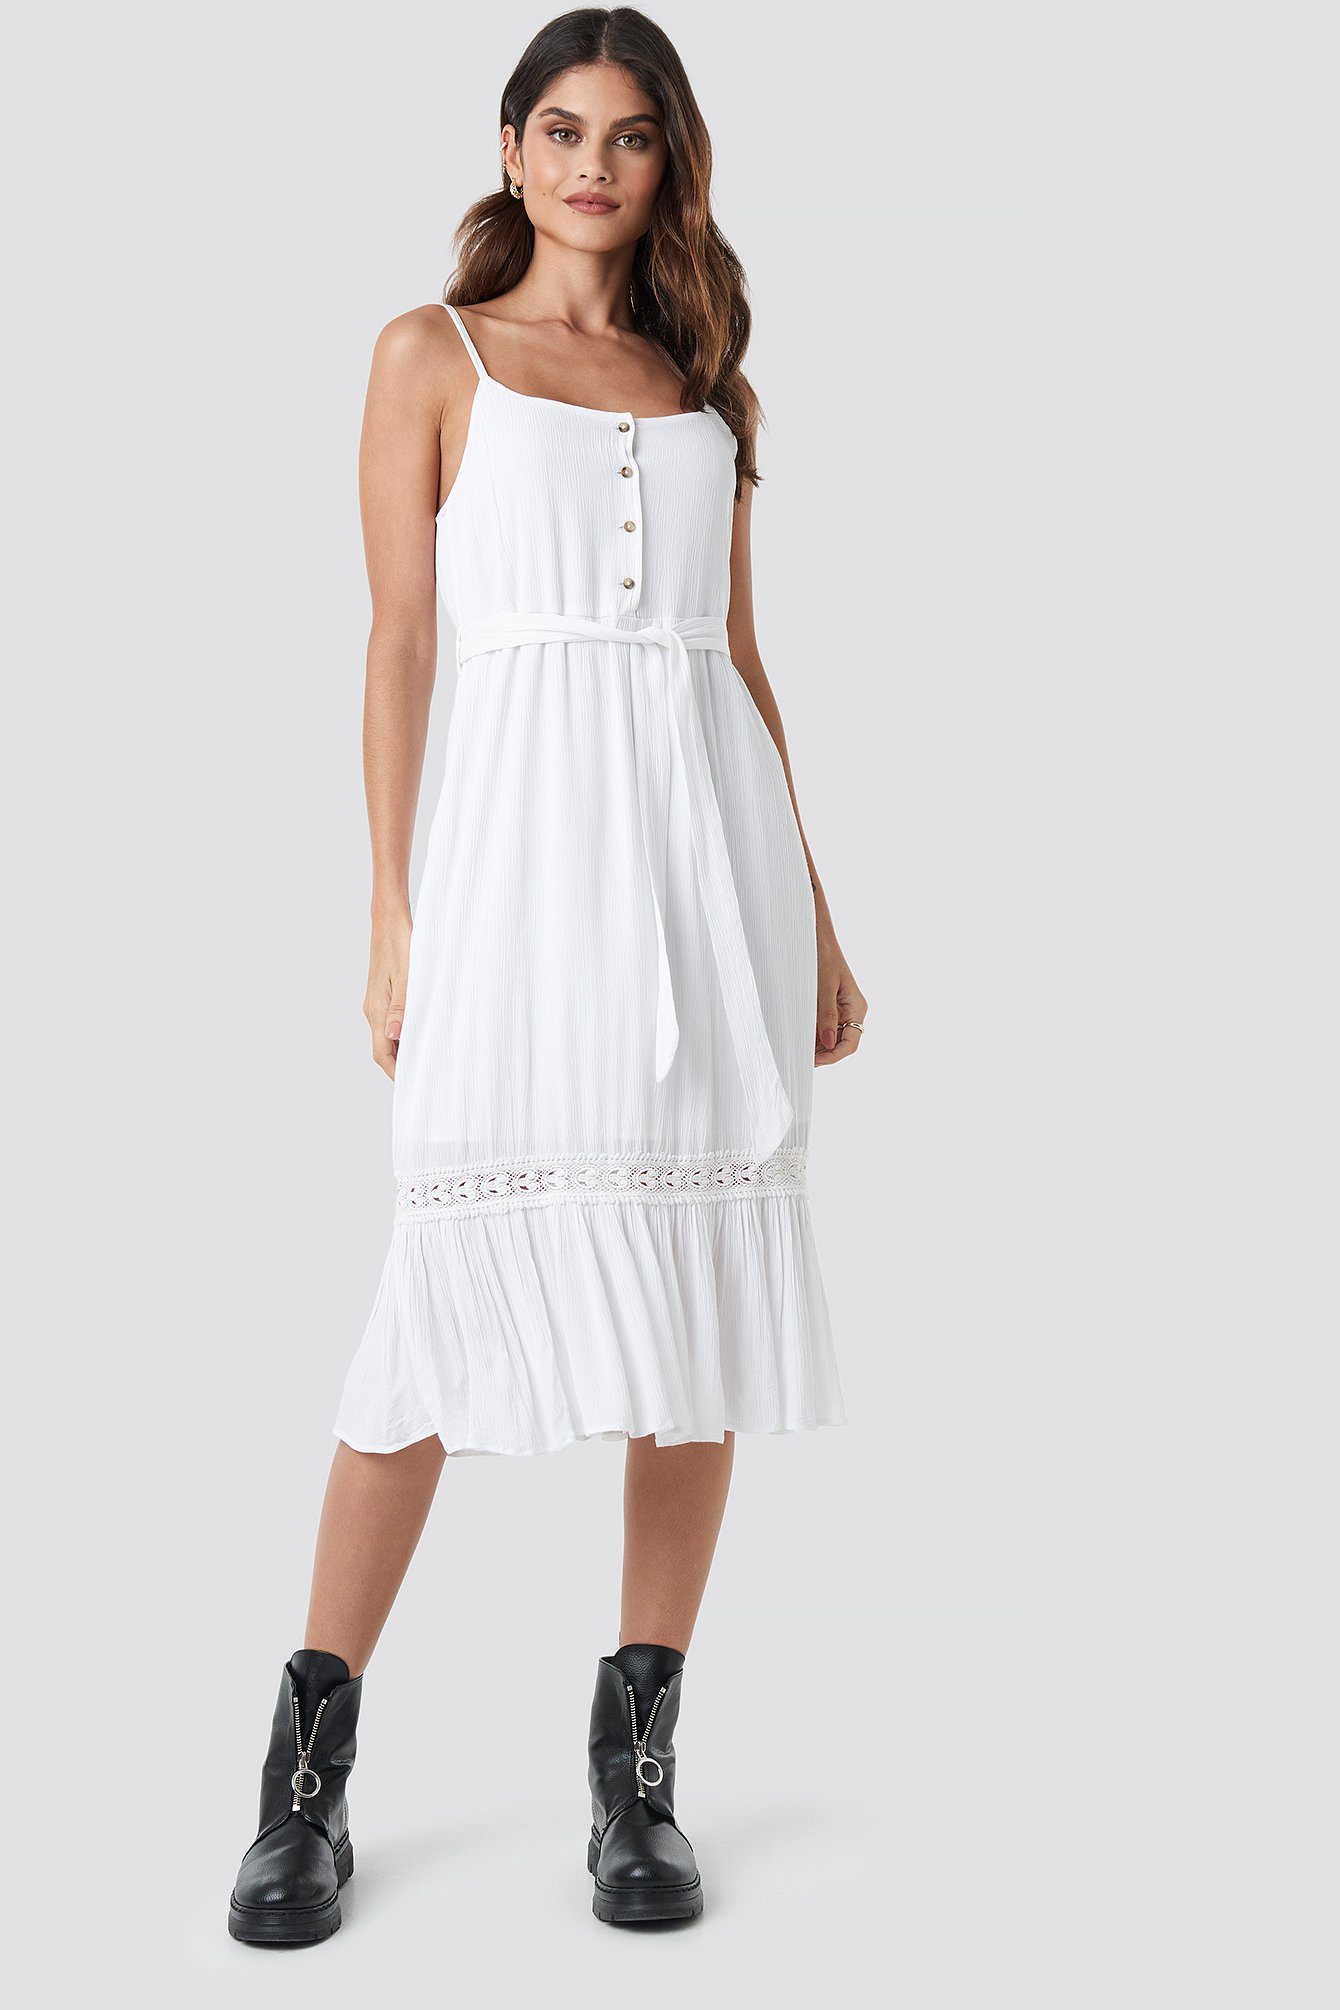 White crochet boho dress + ankle boots | Chic fashion trends